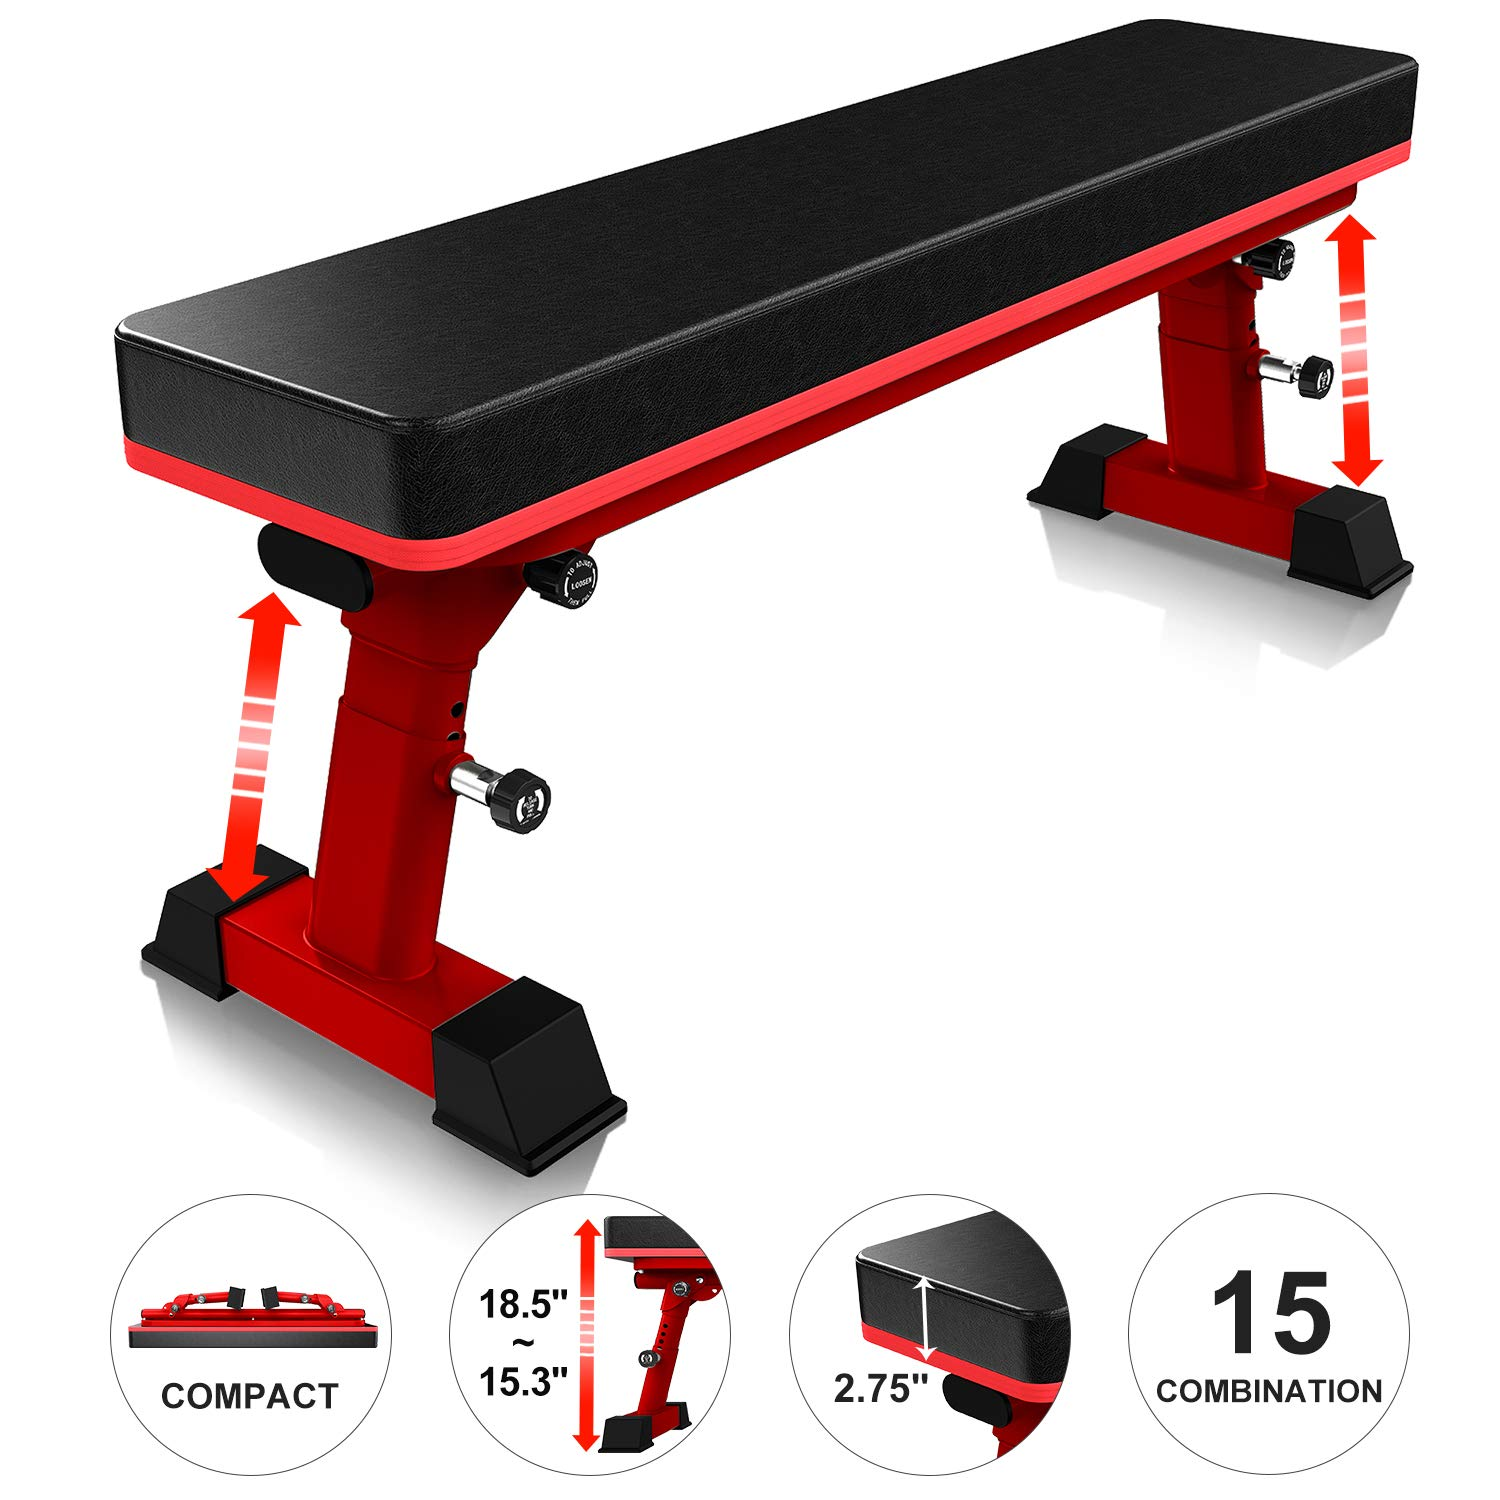 YouTen 800 LBS Adjustable Bench for Body Workout Fitness, 5Positions Flat Bench, Abs Exercise Weight Bench with Steel Frame Red by YouTen